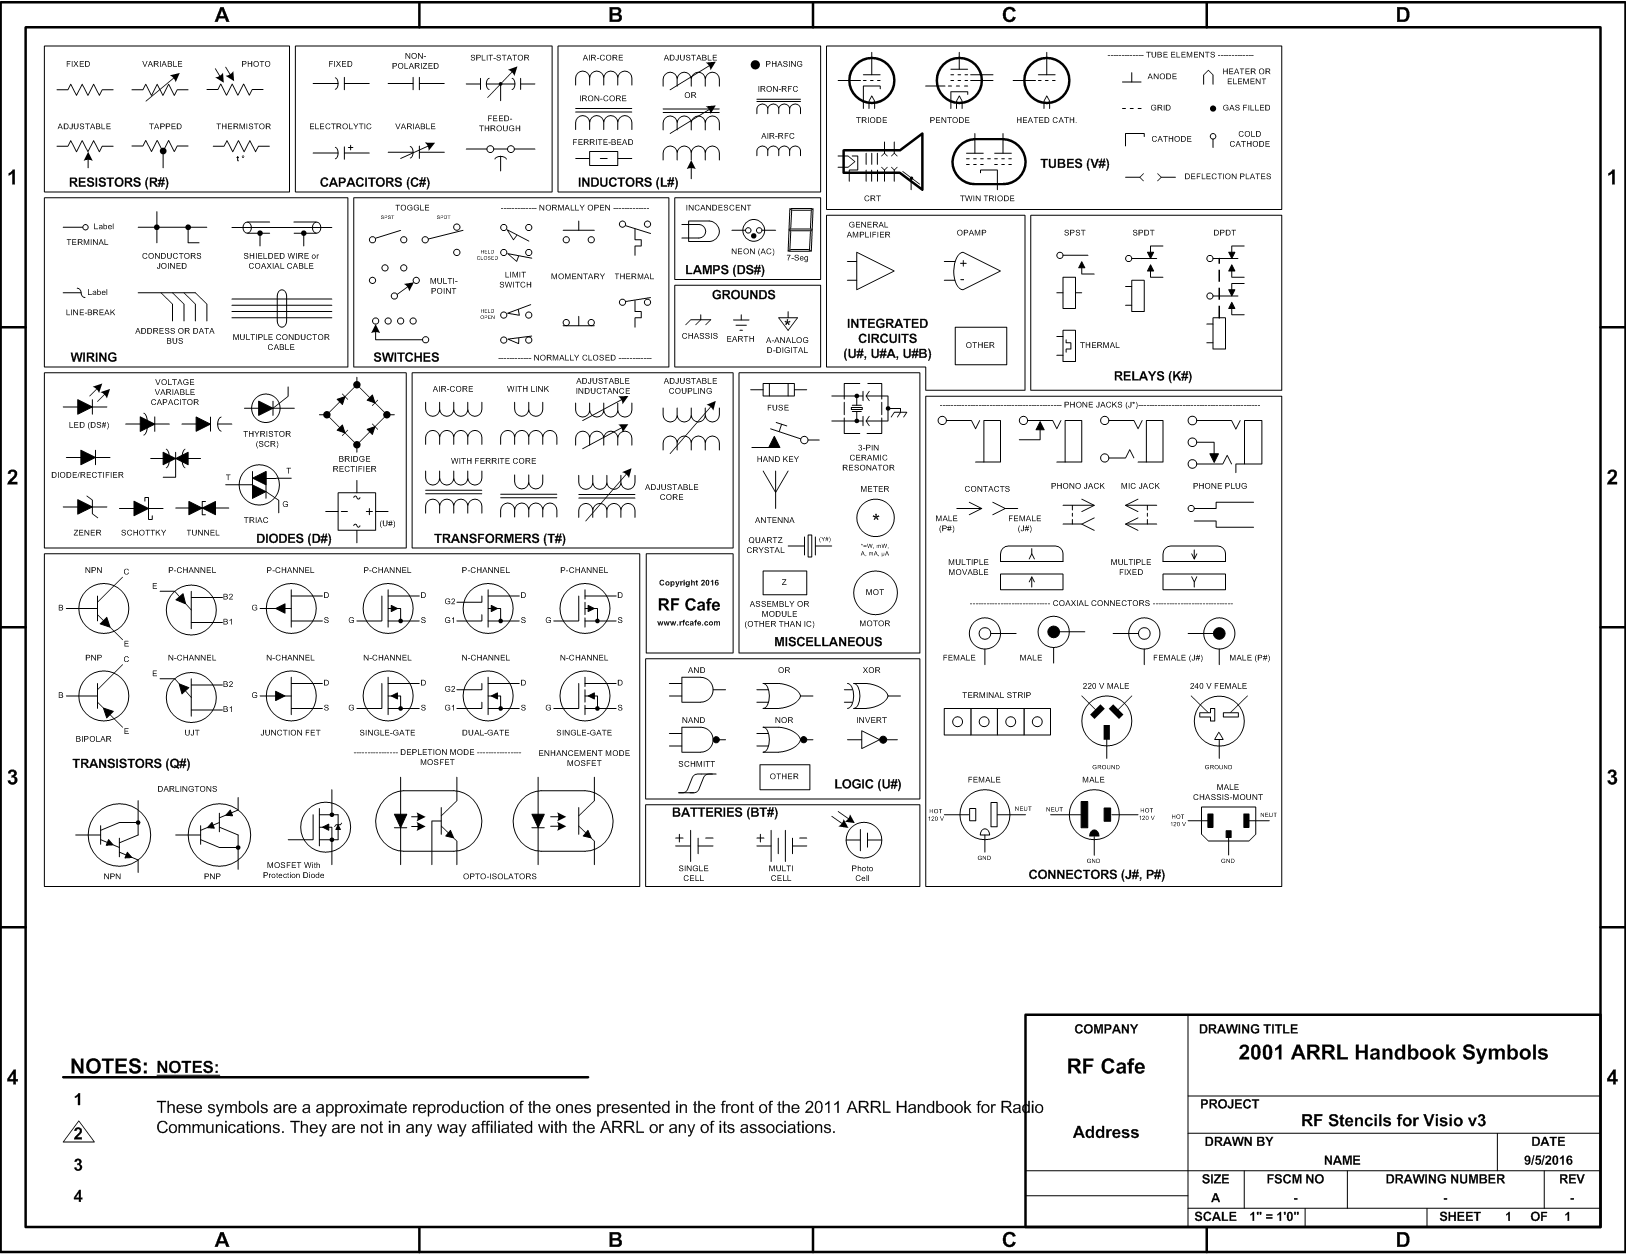 Visio Circuit Schematic Symbols from the 2011 ARRL Handbook - RF Cafe